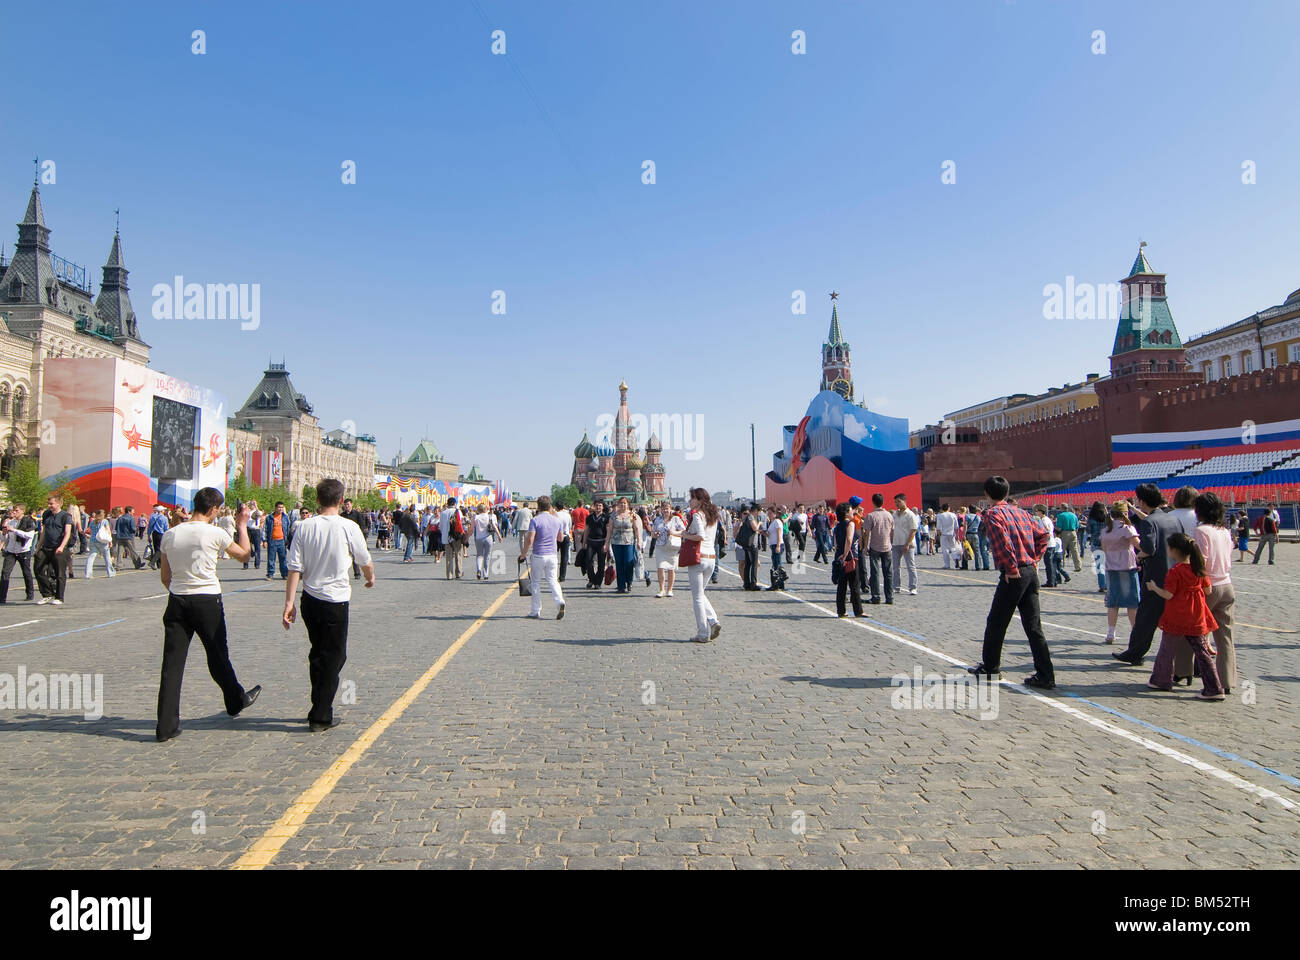 Many people on Red Square during a celebrating of national Russian holiday 'Victory Day' 9-th May 2010 - Stock Image